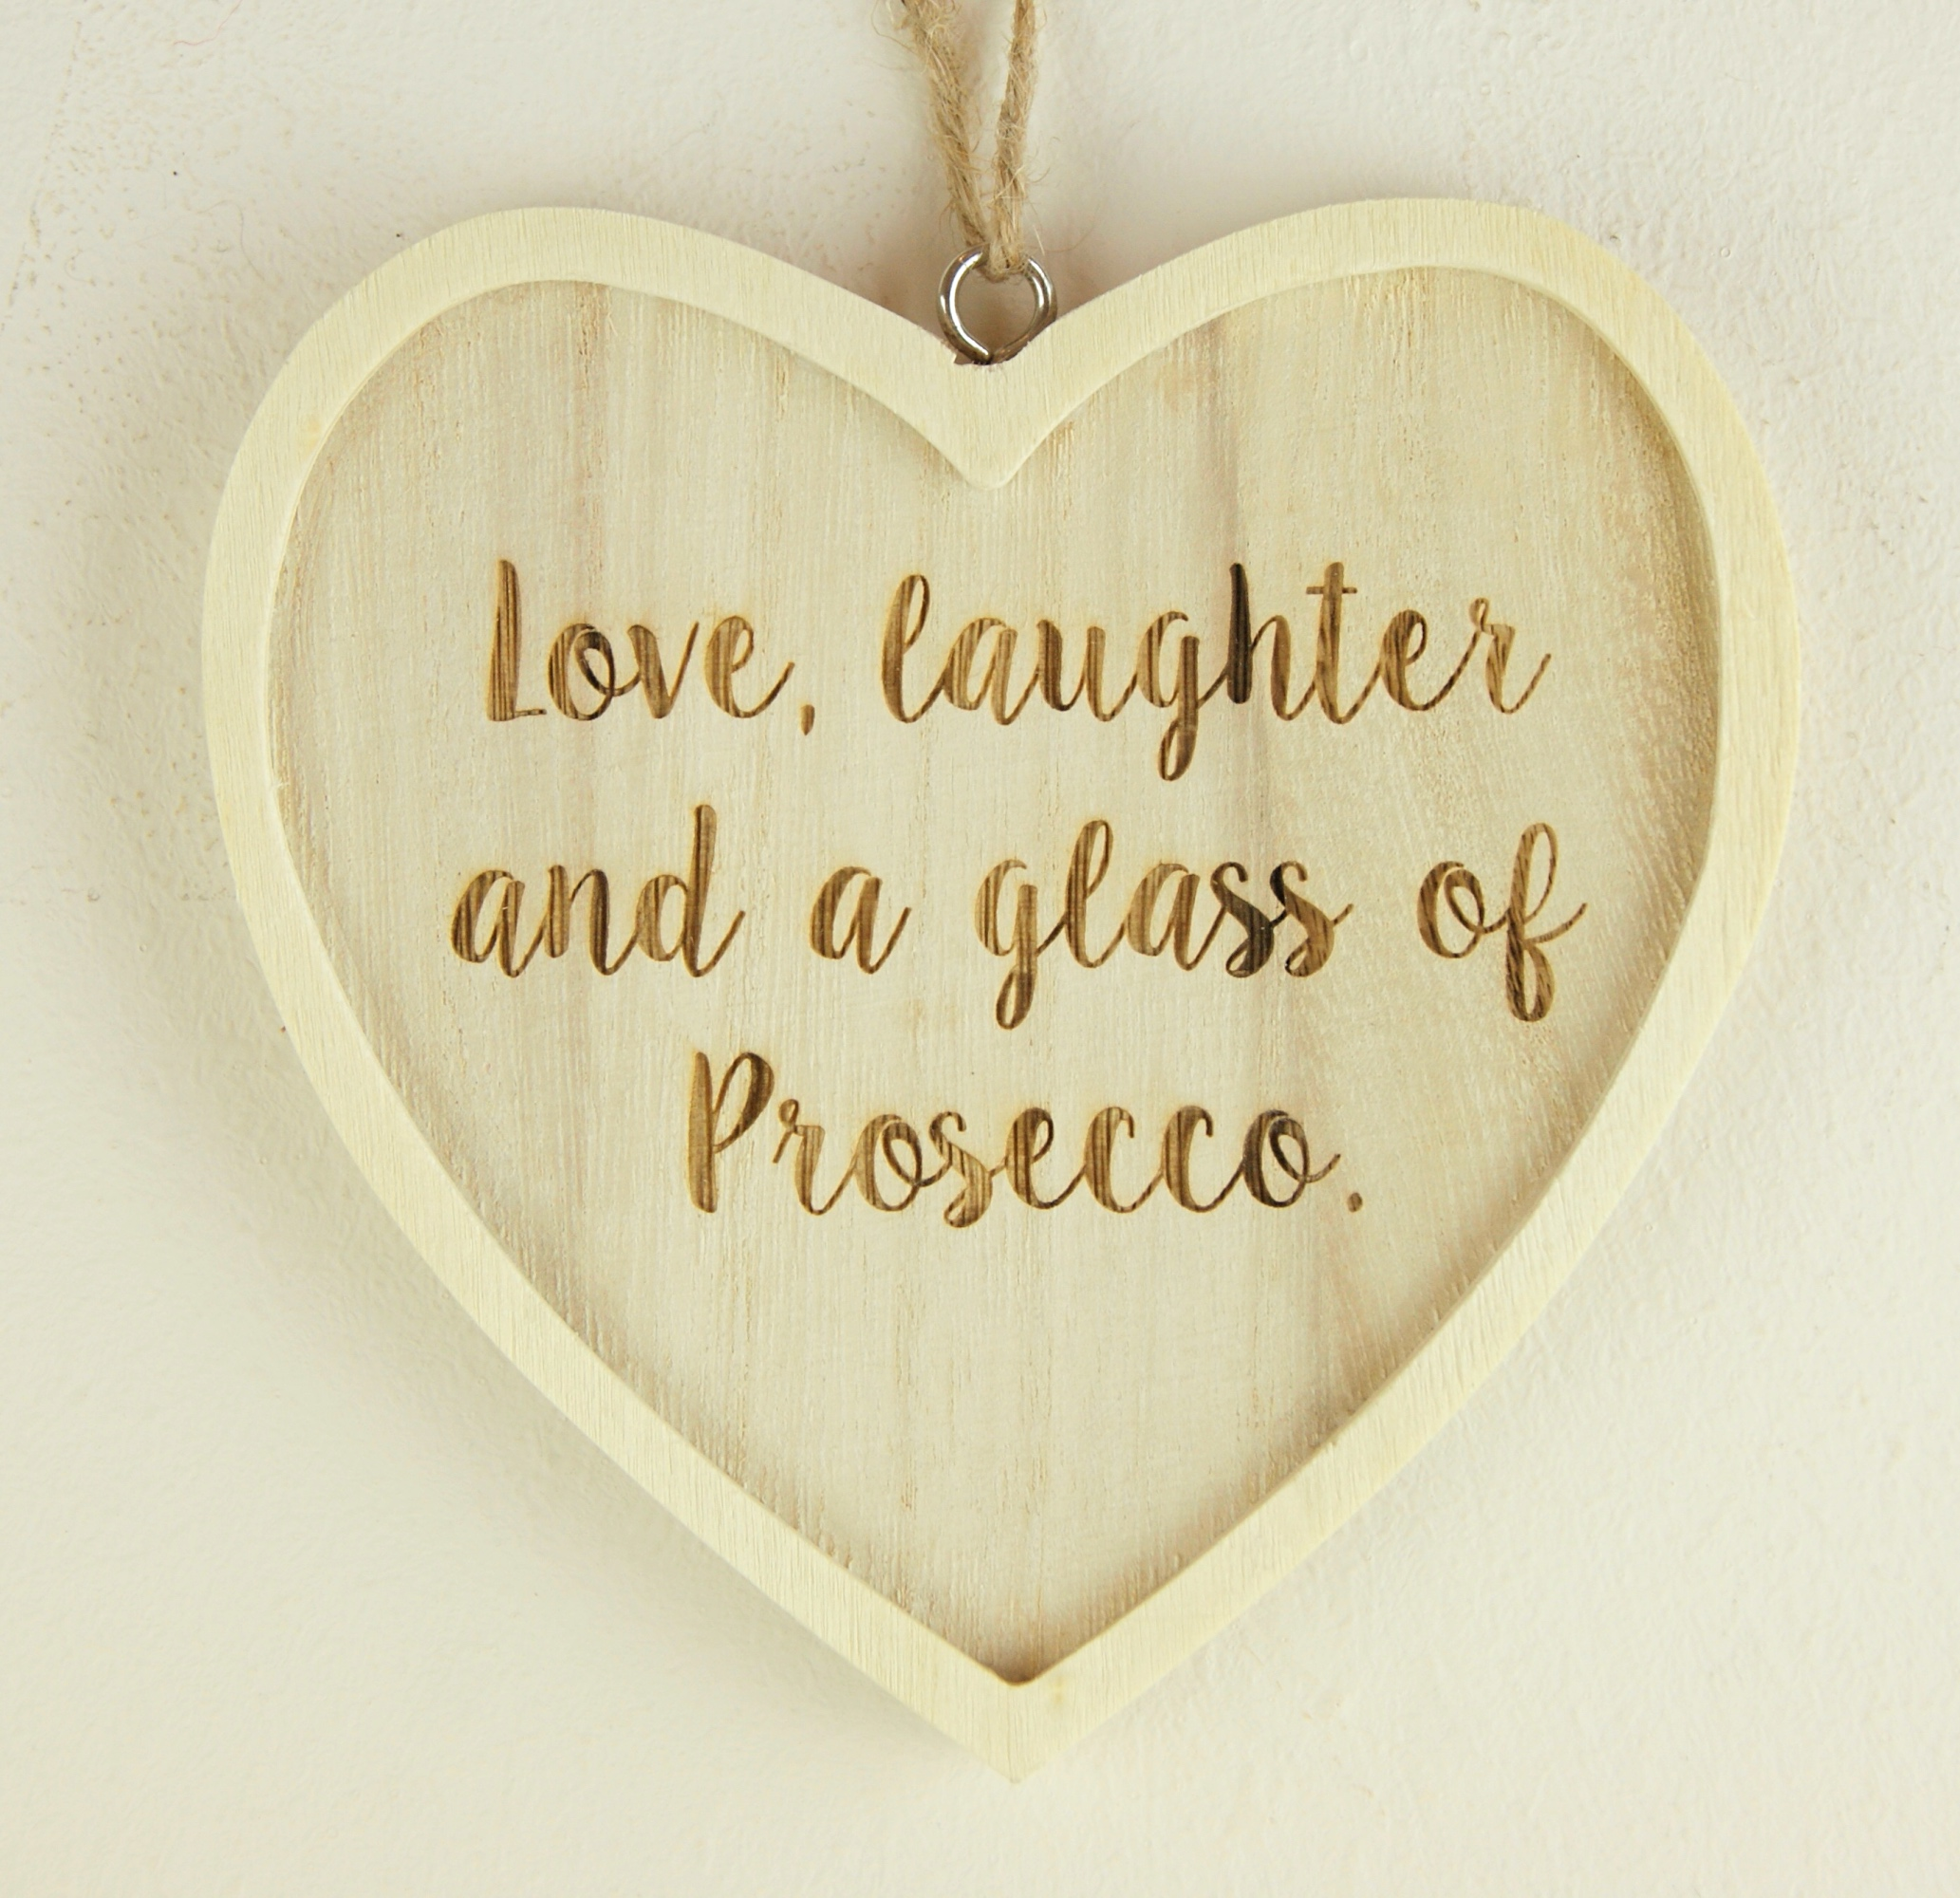 Love Quote Signs Love Laughter Prosecco Heart Sign Home Decor Home Of La Juniper